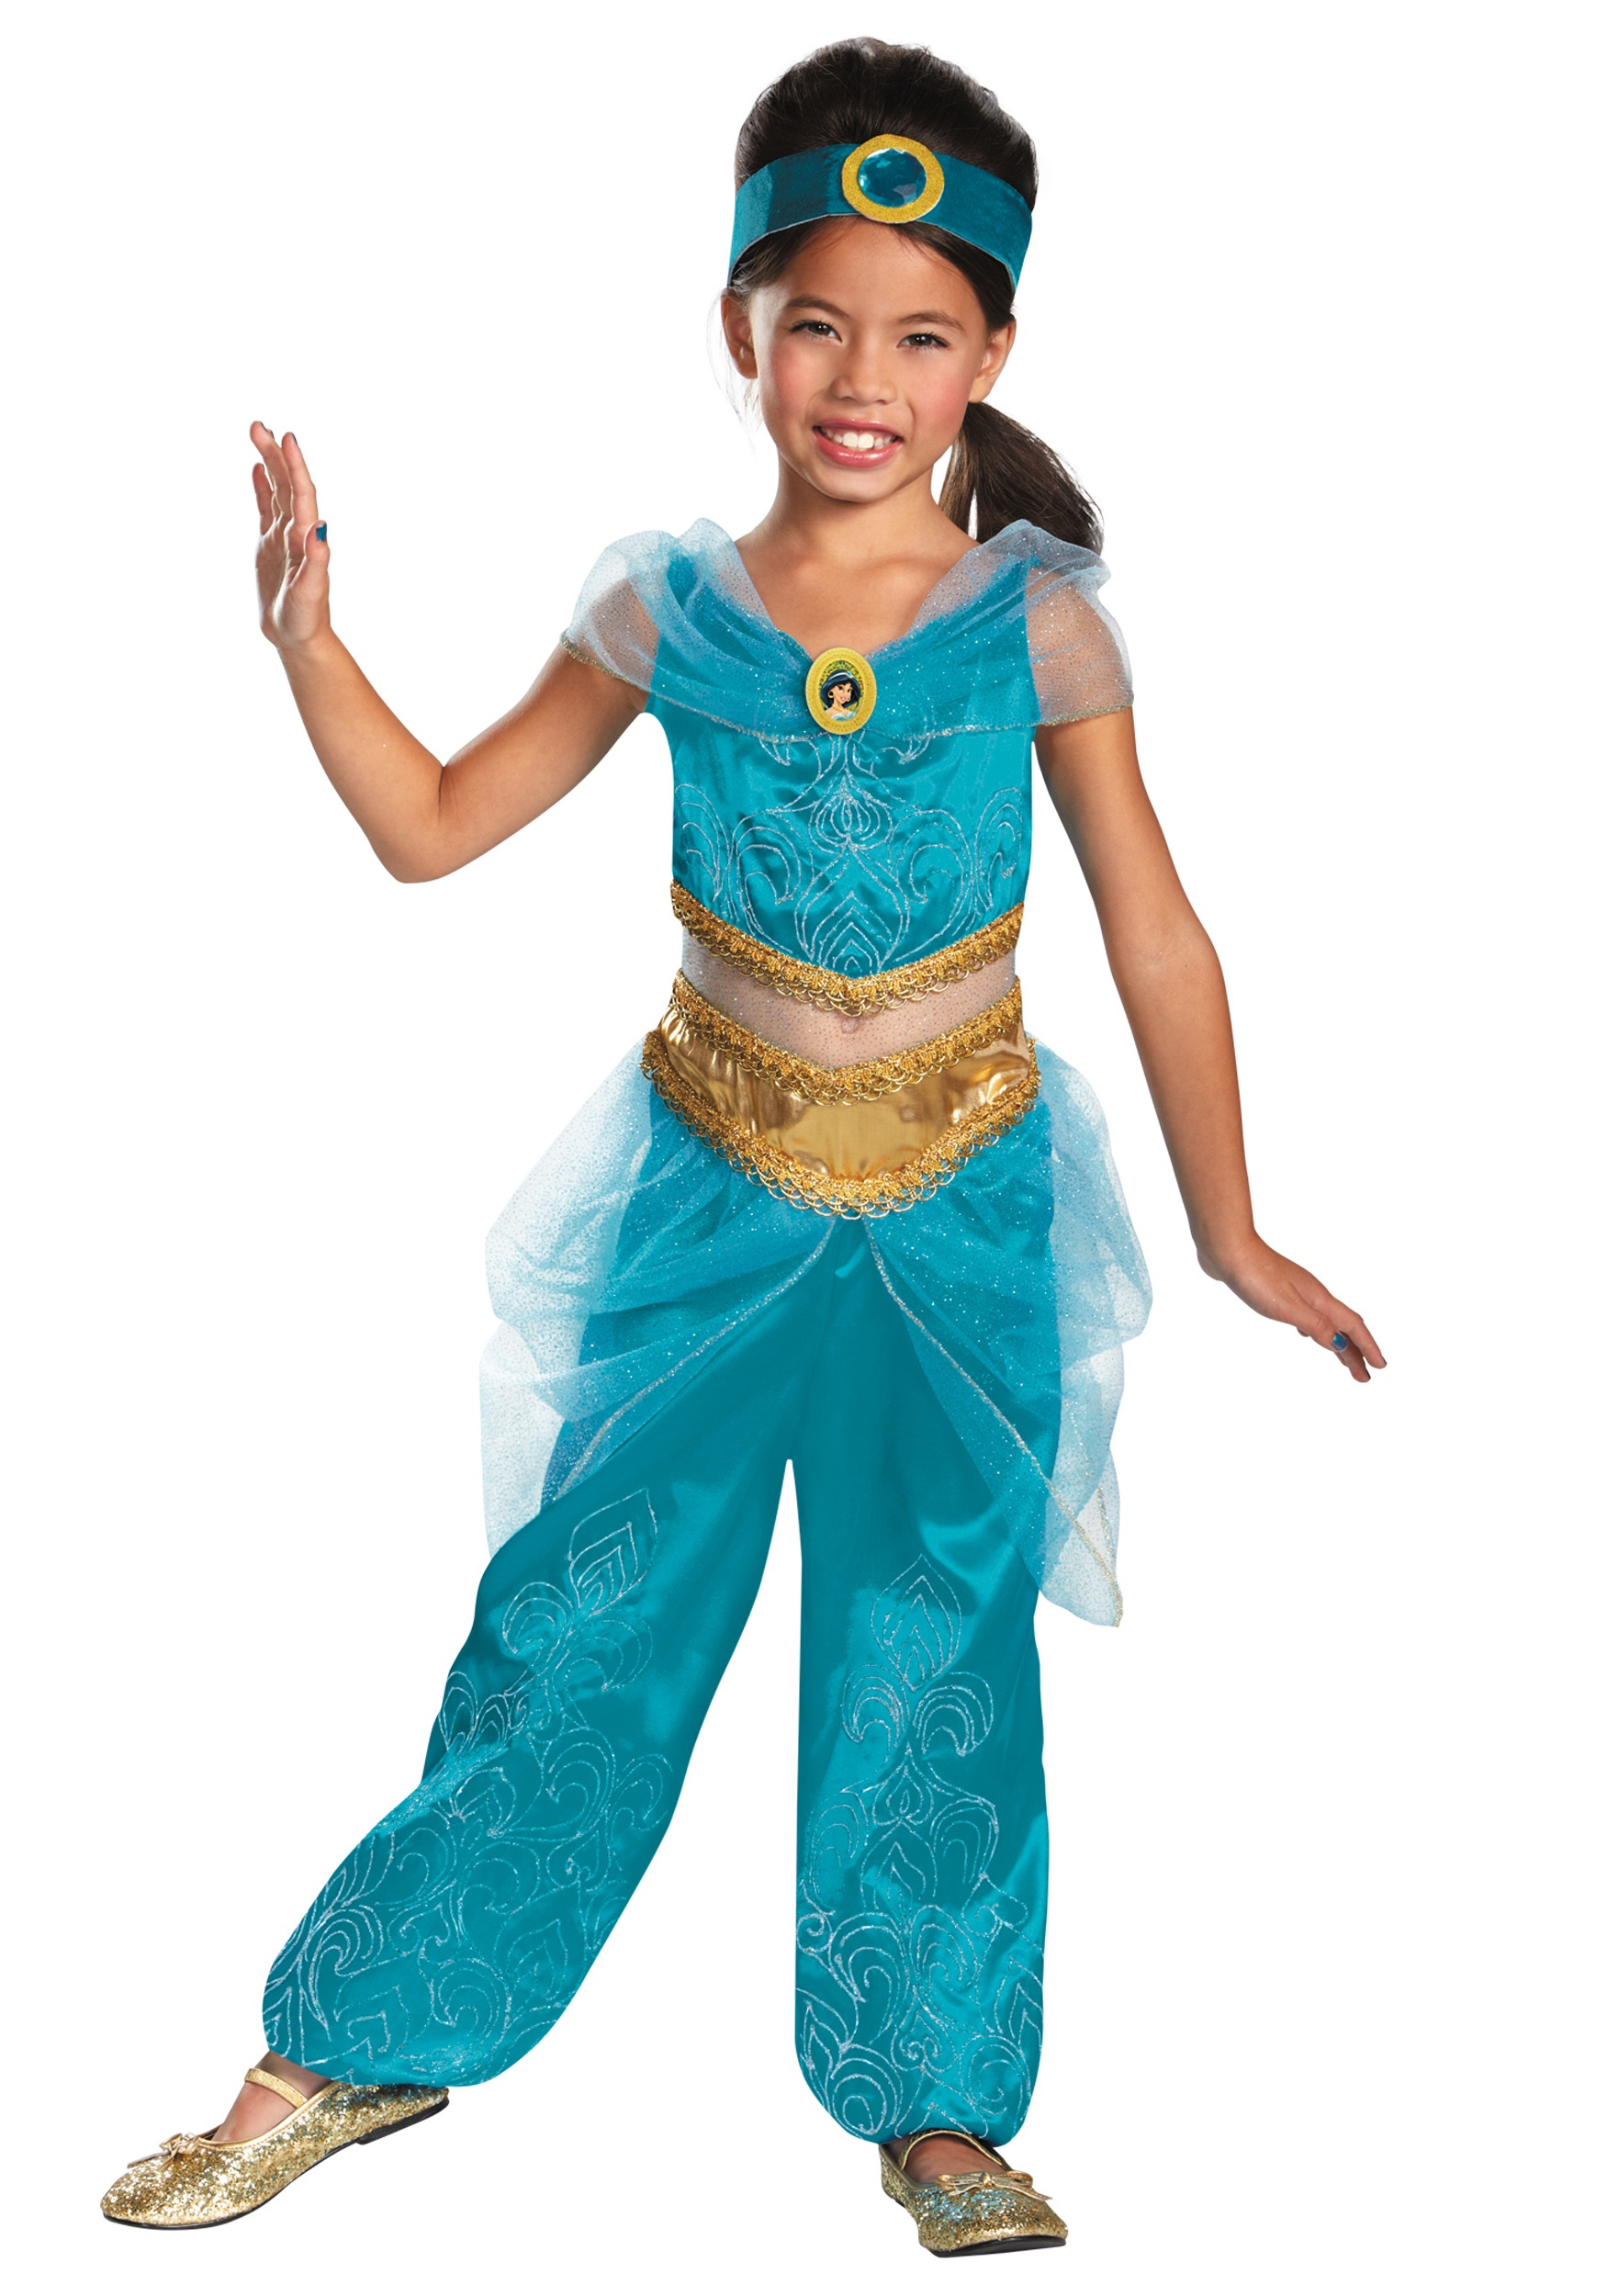 Girls Jasmine Sparkle Deluxe Costume  sc 1 st  Halloween Costumes & Girls Jasmine Sparkle Deluxe Costume - Halloween Costumes